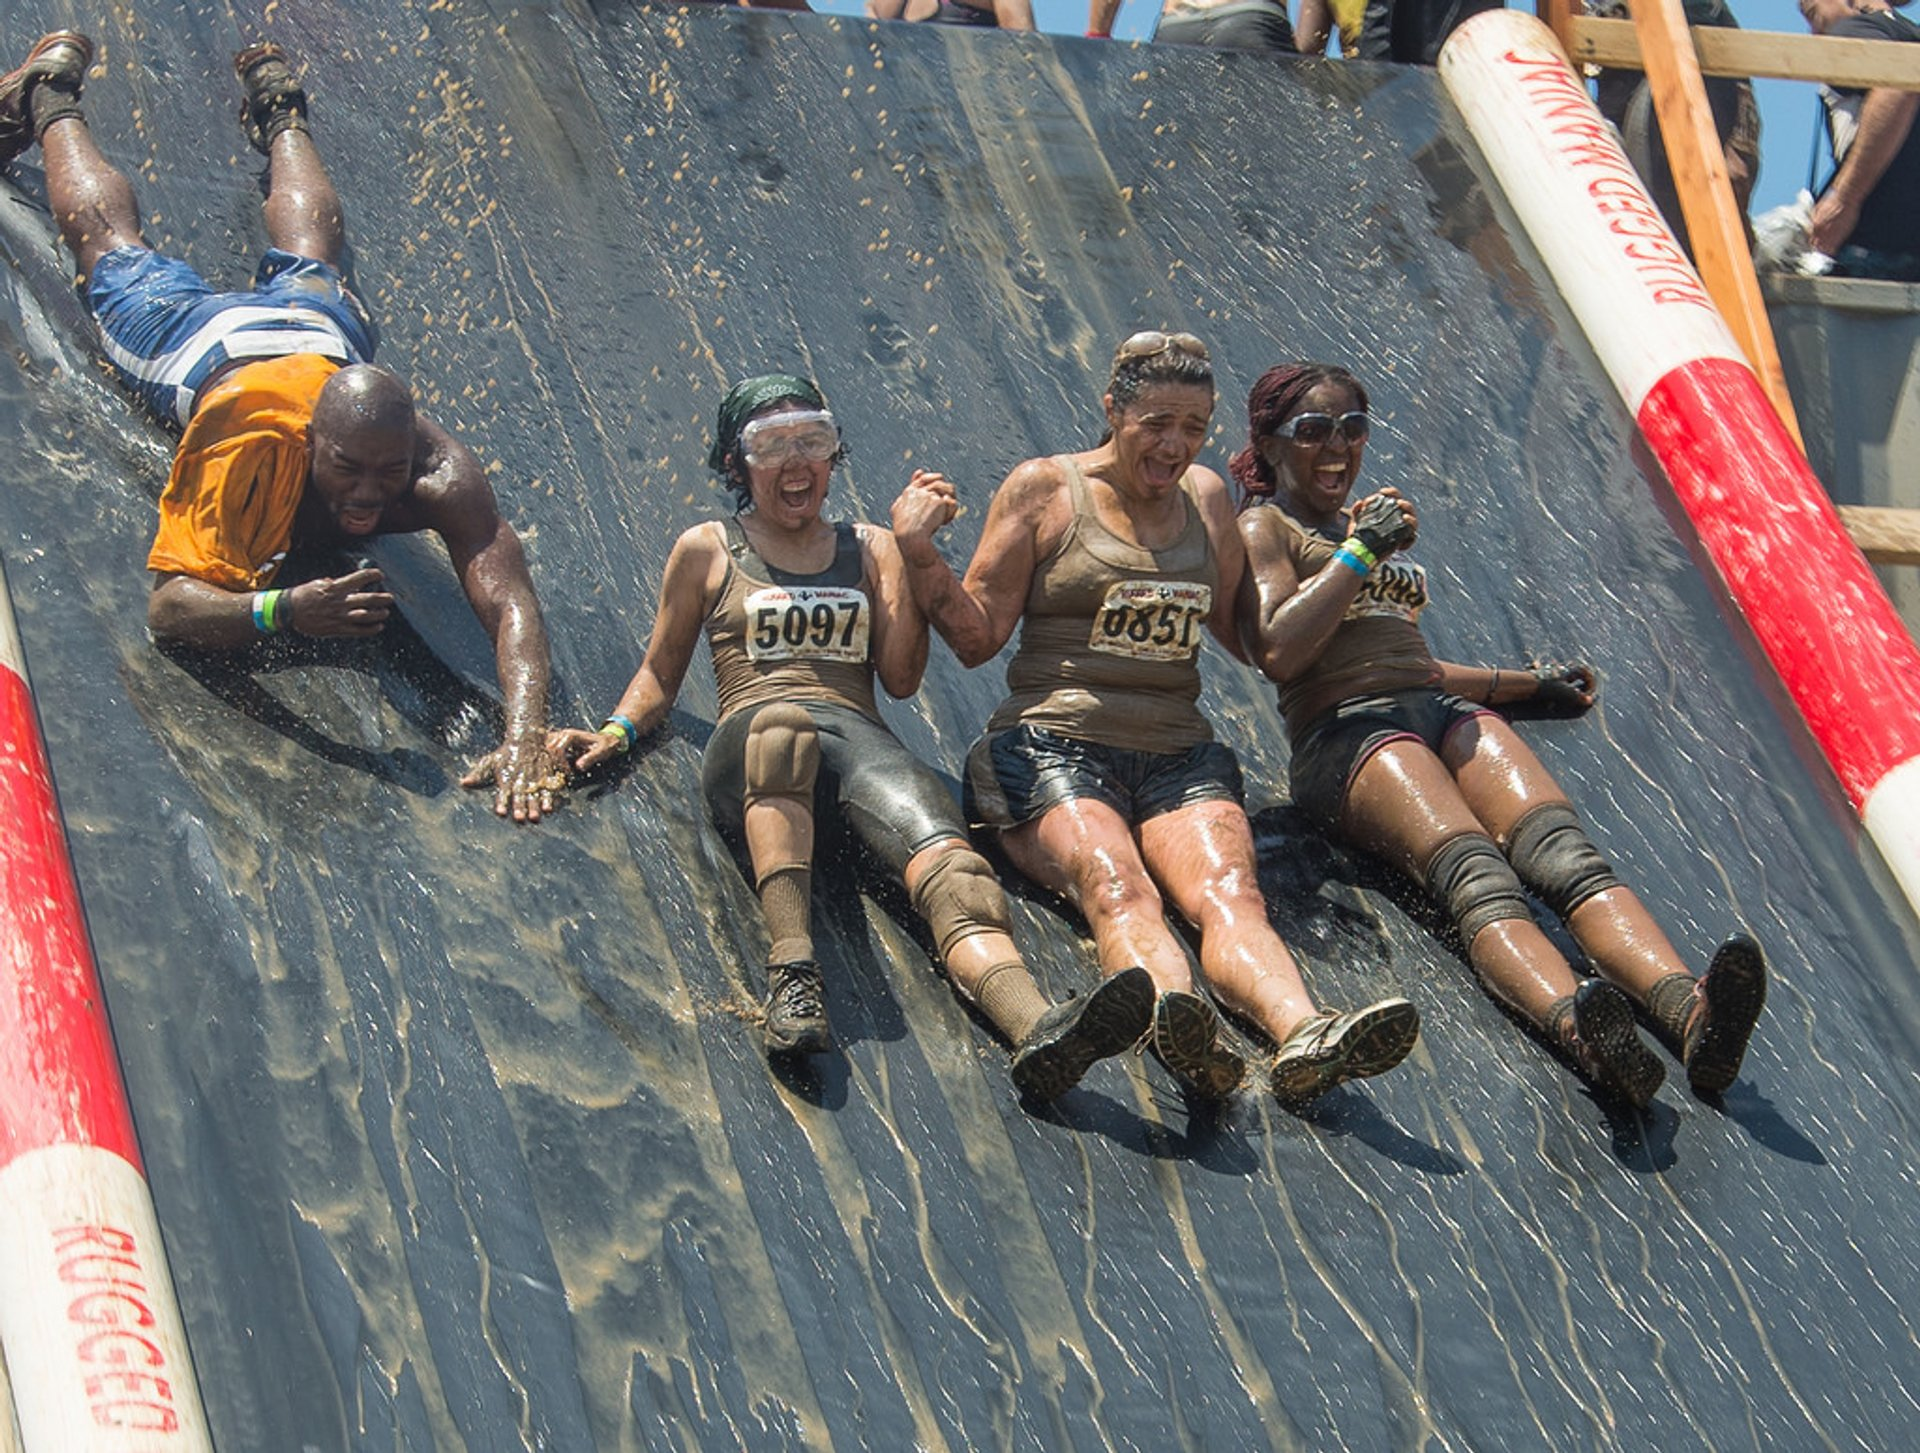 Best time for Rugged Maniac New York City in New York 2020